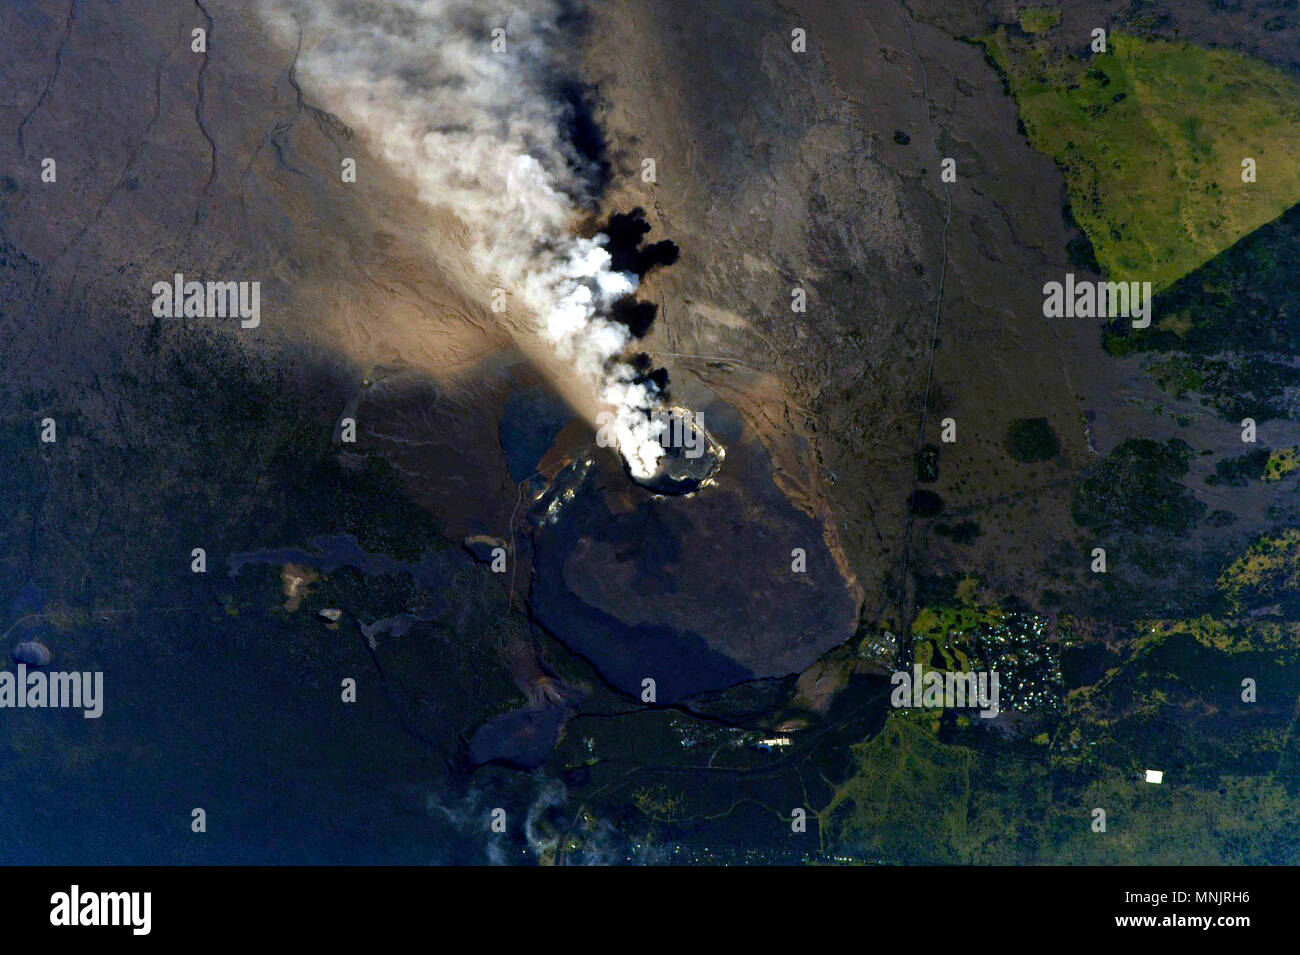 View from the International Space Station of ash and poison gases spewing from the eruption of the Kilauea volcano May 13, 2018 in Pahoa, Hawaii. - Stock Image